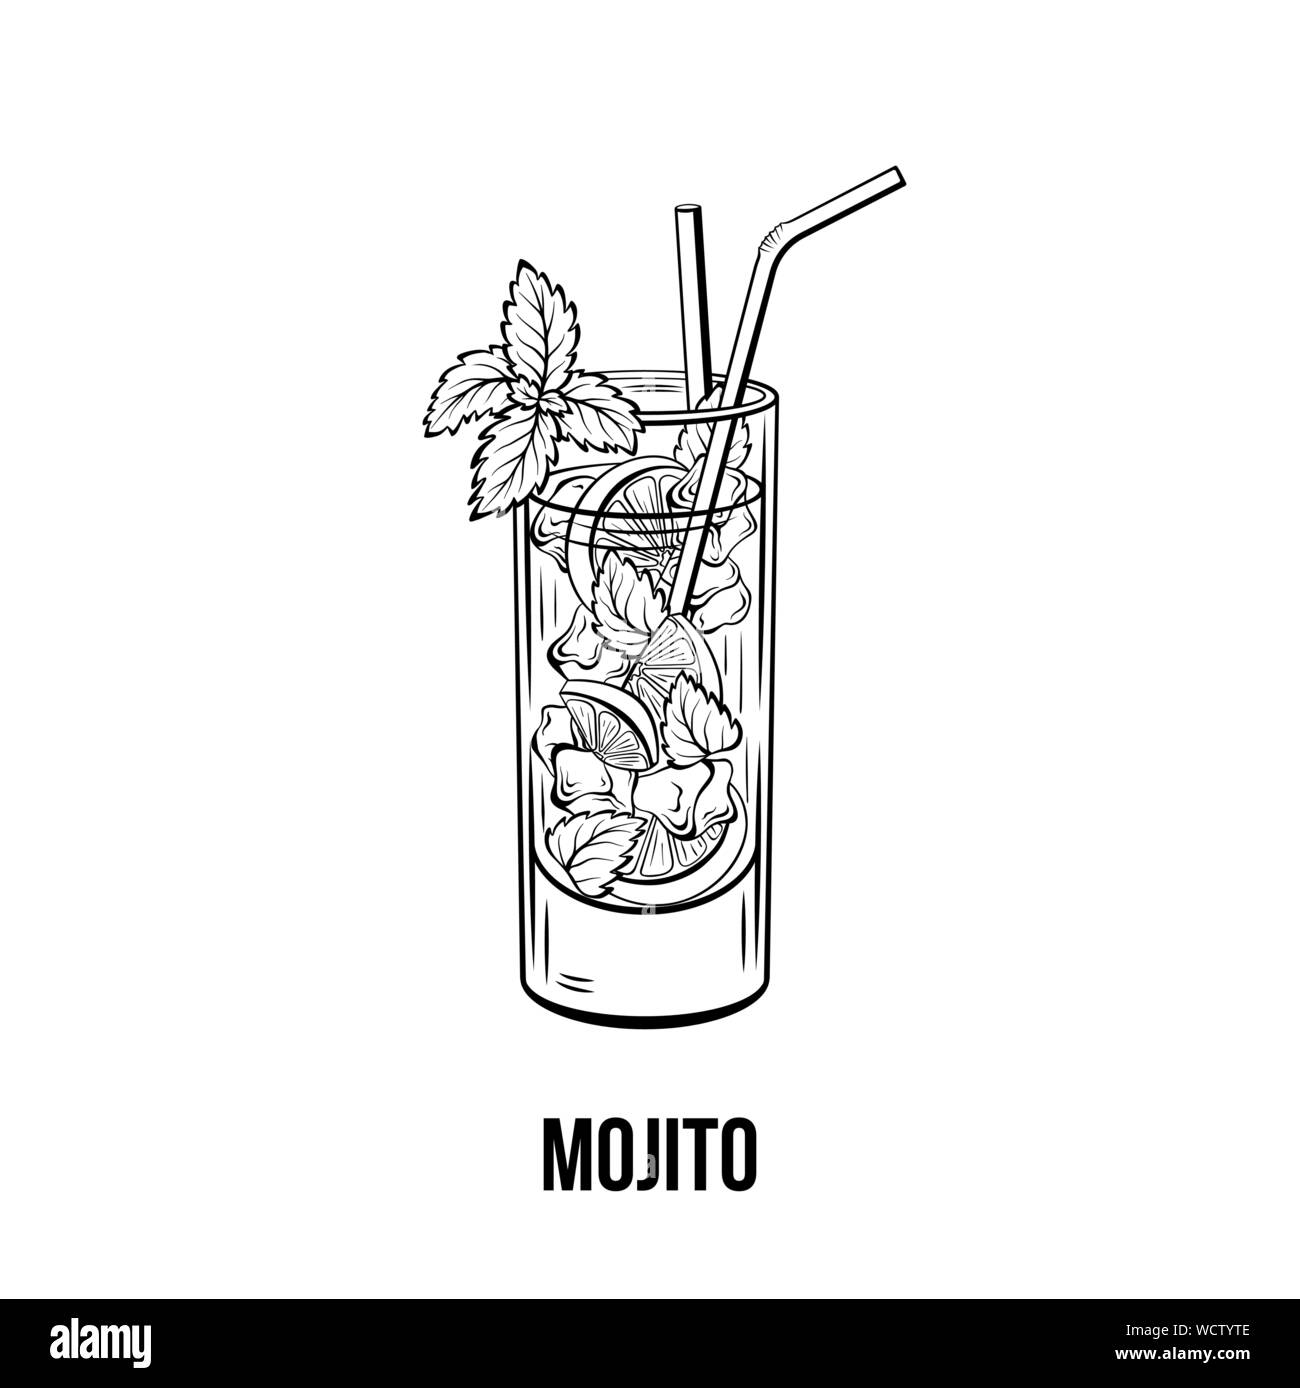 Mojito vector hand drawn illustration. Fruity beverage, strong drink. Monochrome refreshing non alcoholic cocktail with lime, mint and ice ink drawing. Restaurant menu, poster design element Stock Vector